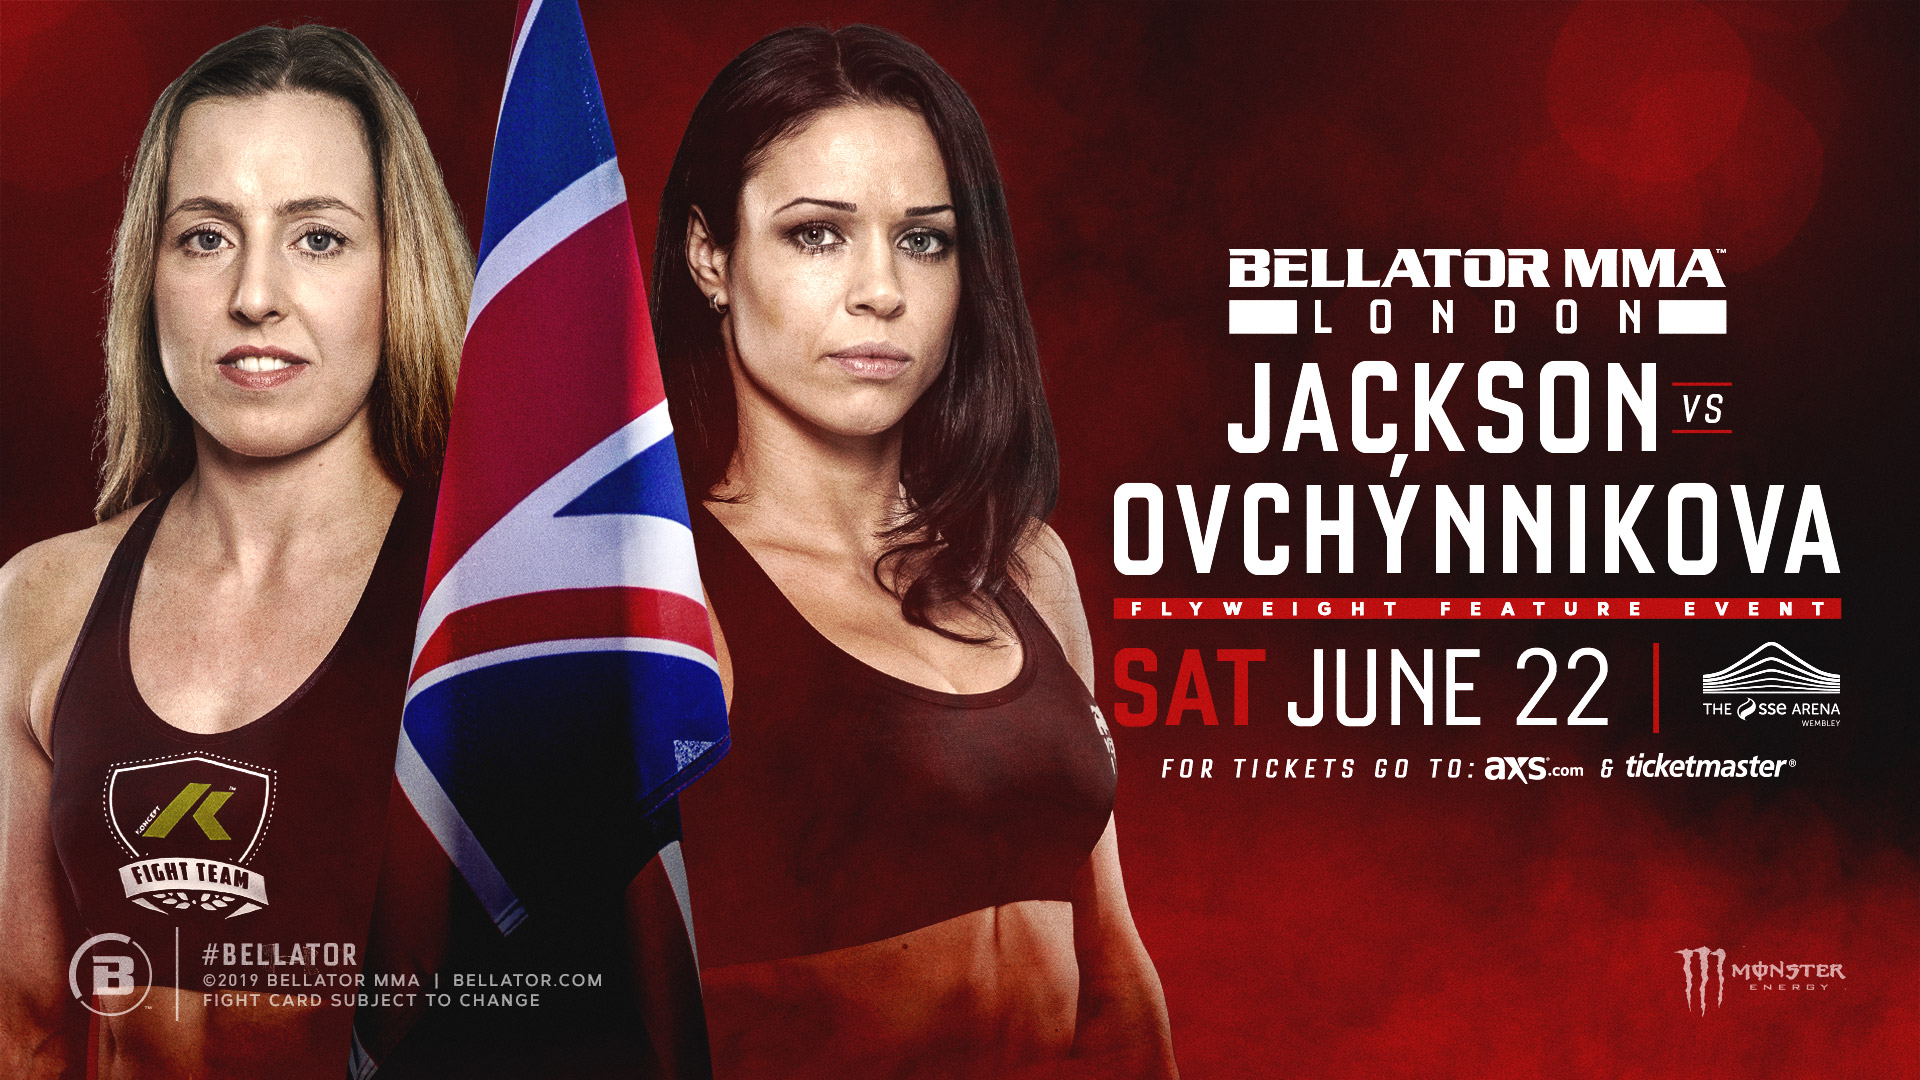 BMMA_June22_London_1920x1080_jackson_v_ovchynnikova.jpg